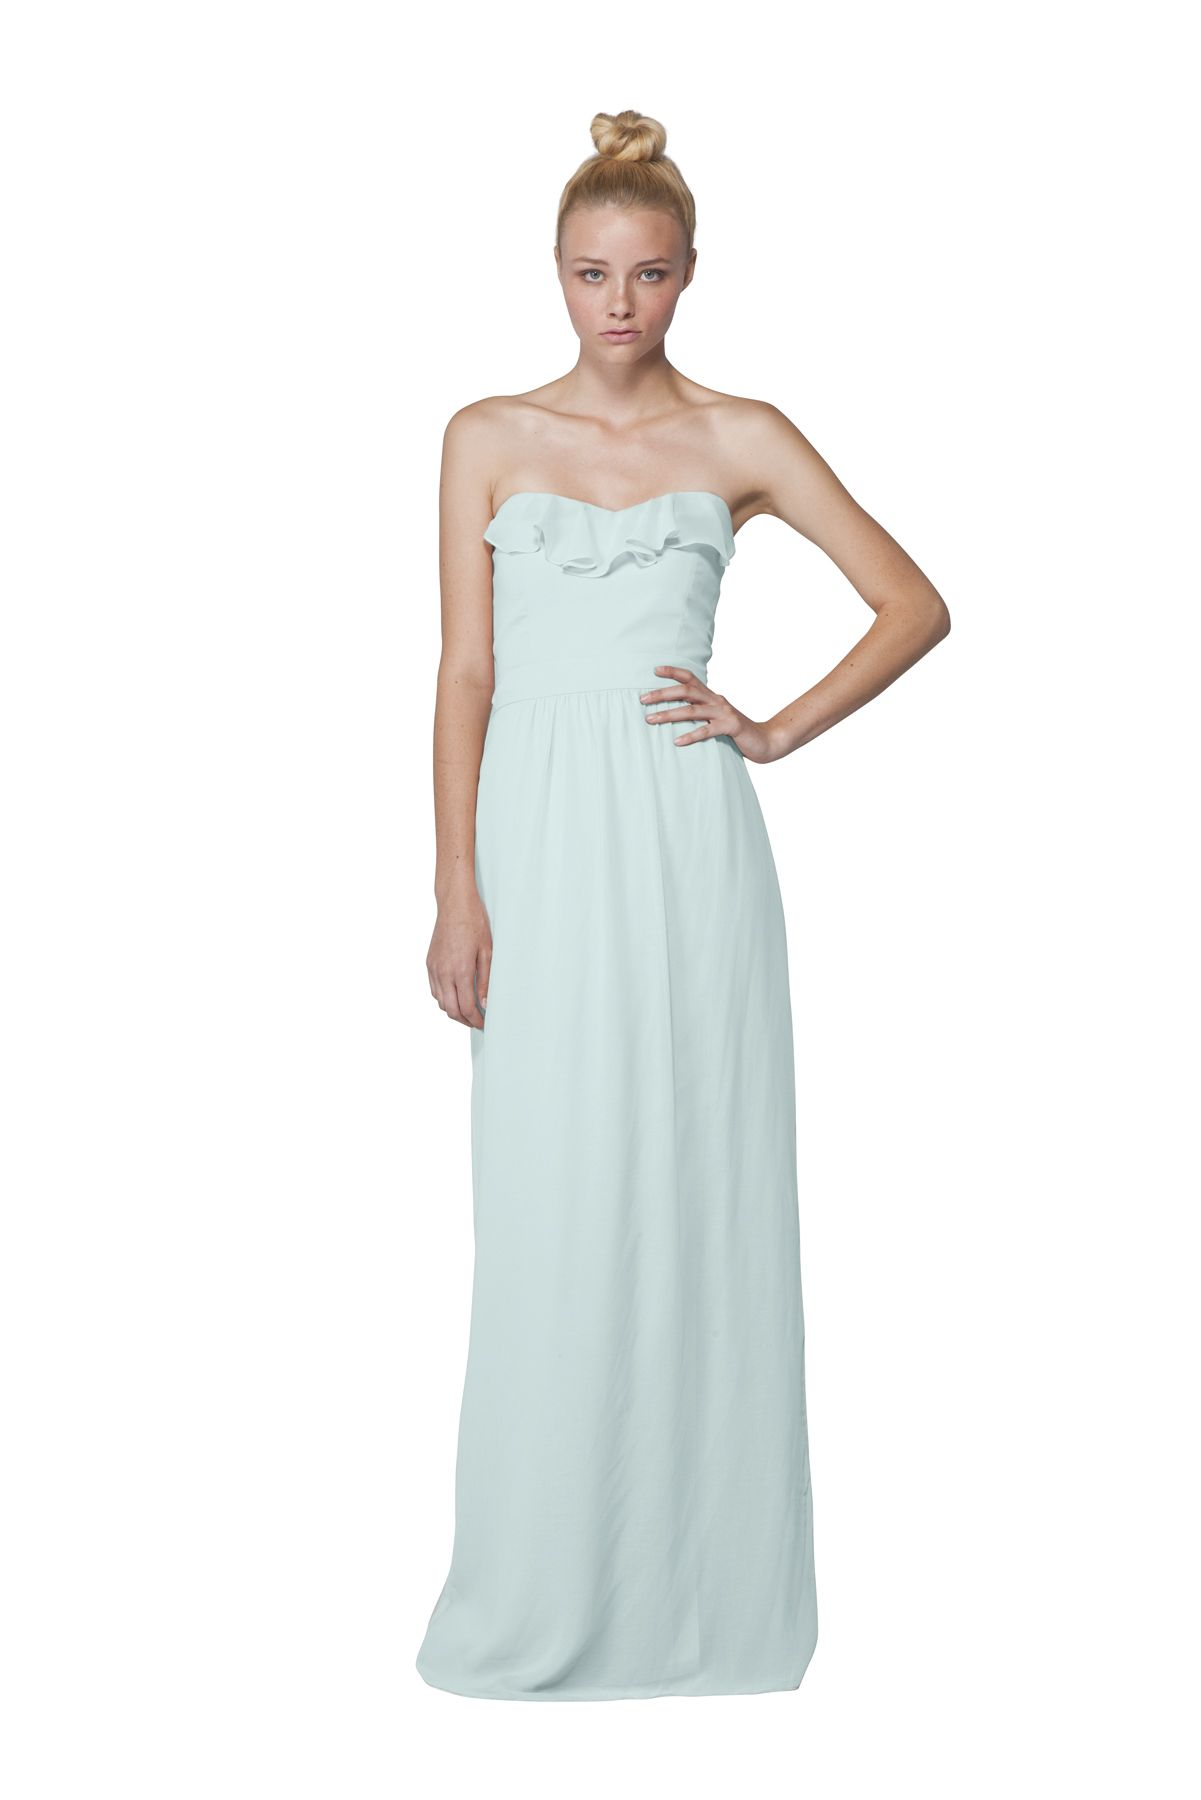 Joanna august whitney long skirt bridesmaid dress weddington way joanna august whitney long bridesmaid dress in i want candy seafoam mint ombrellifo Image collections